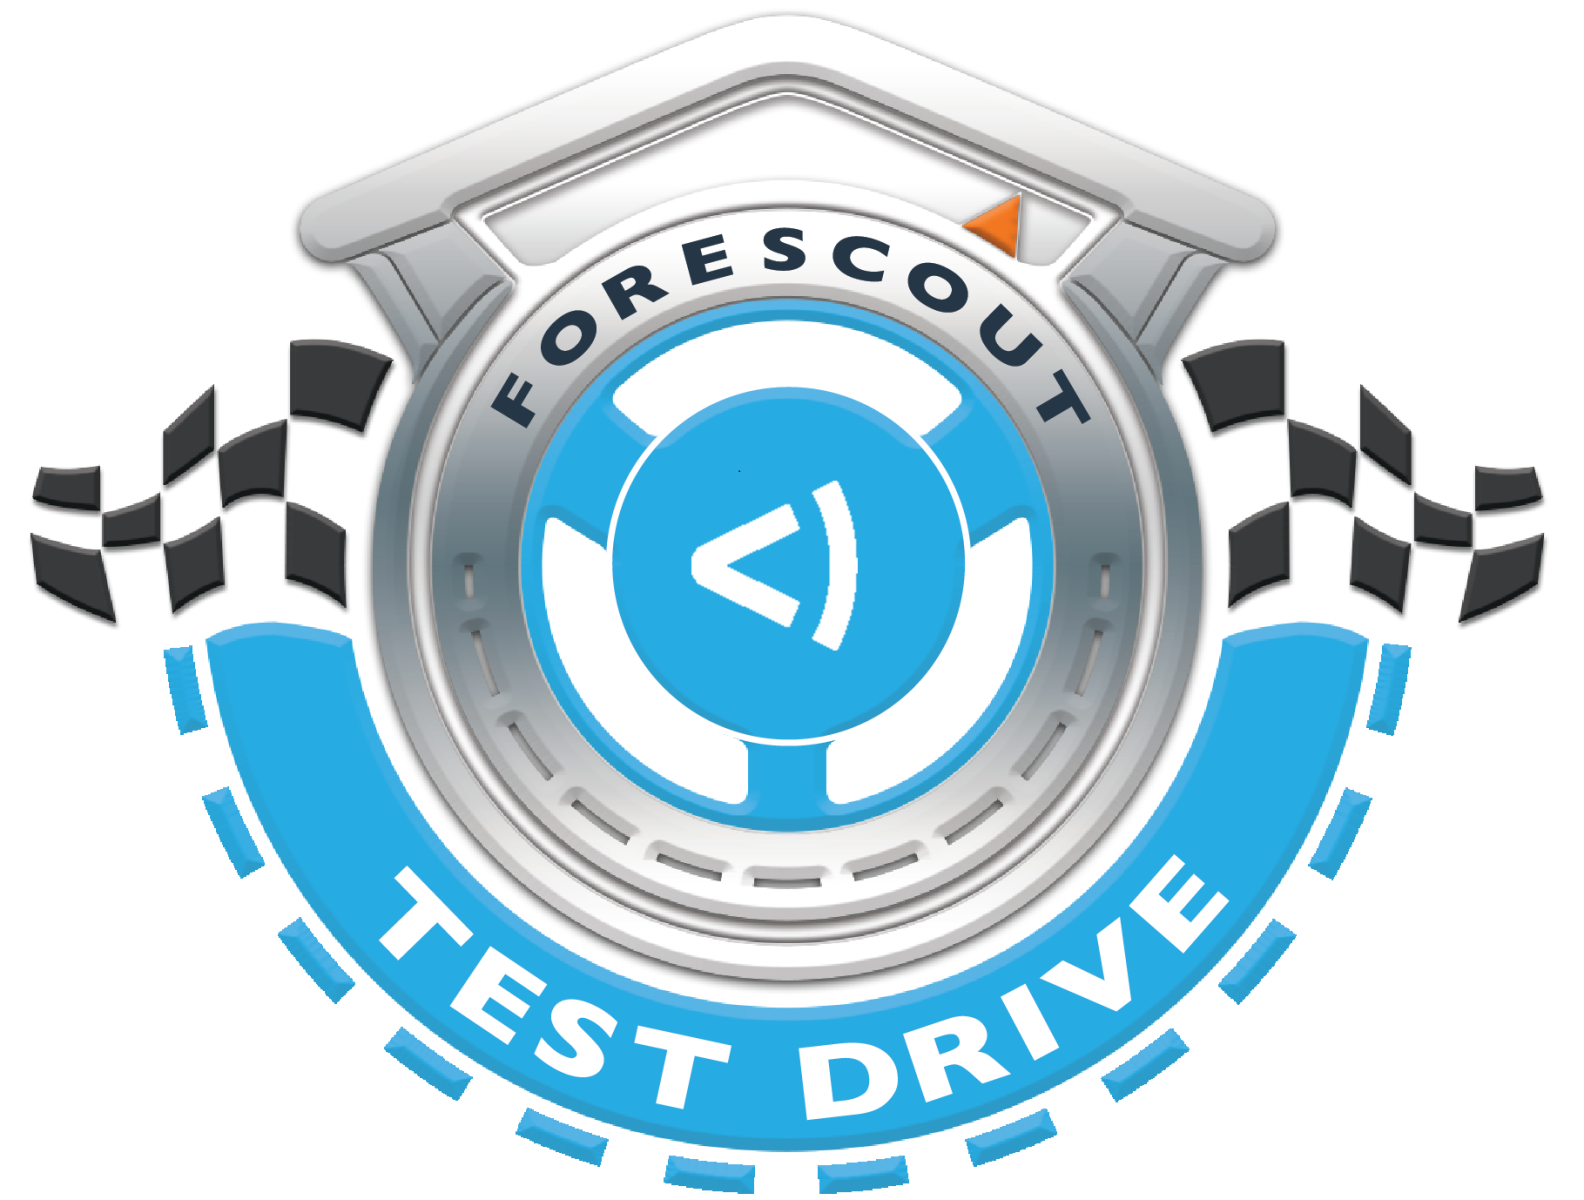 Forescout Test Drive - San Diego - View